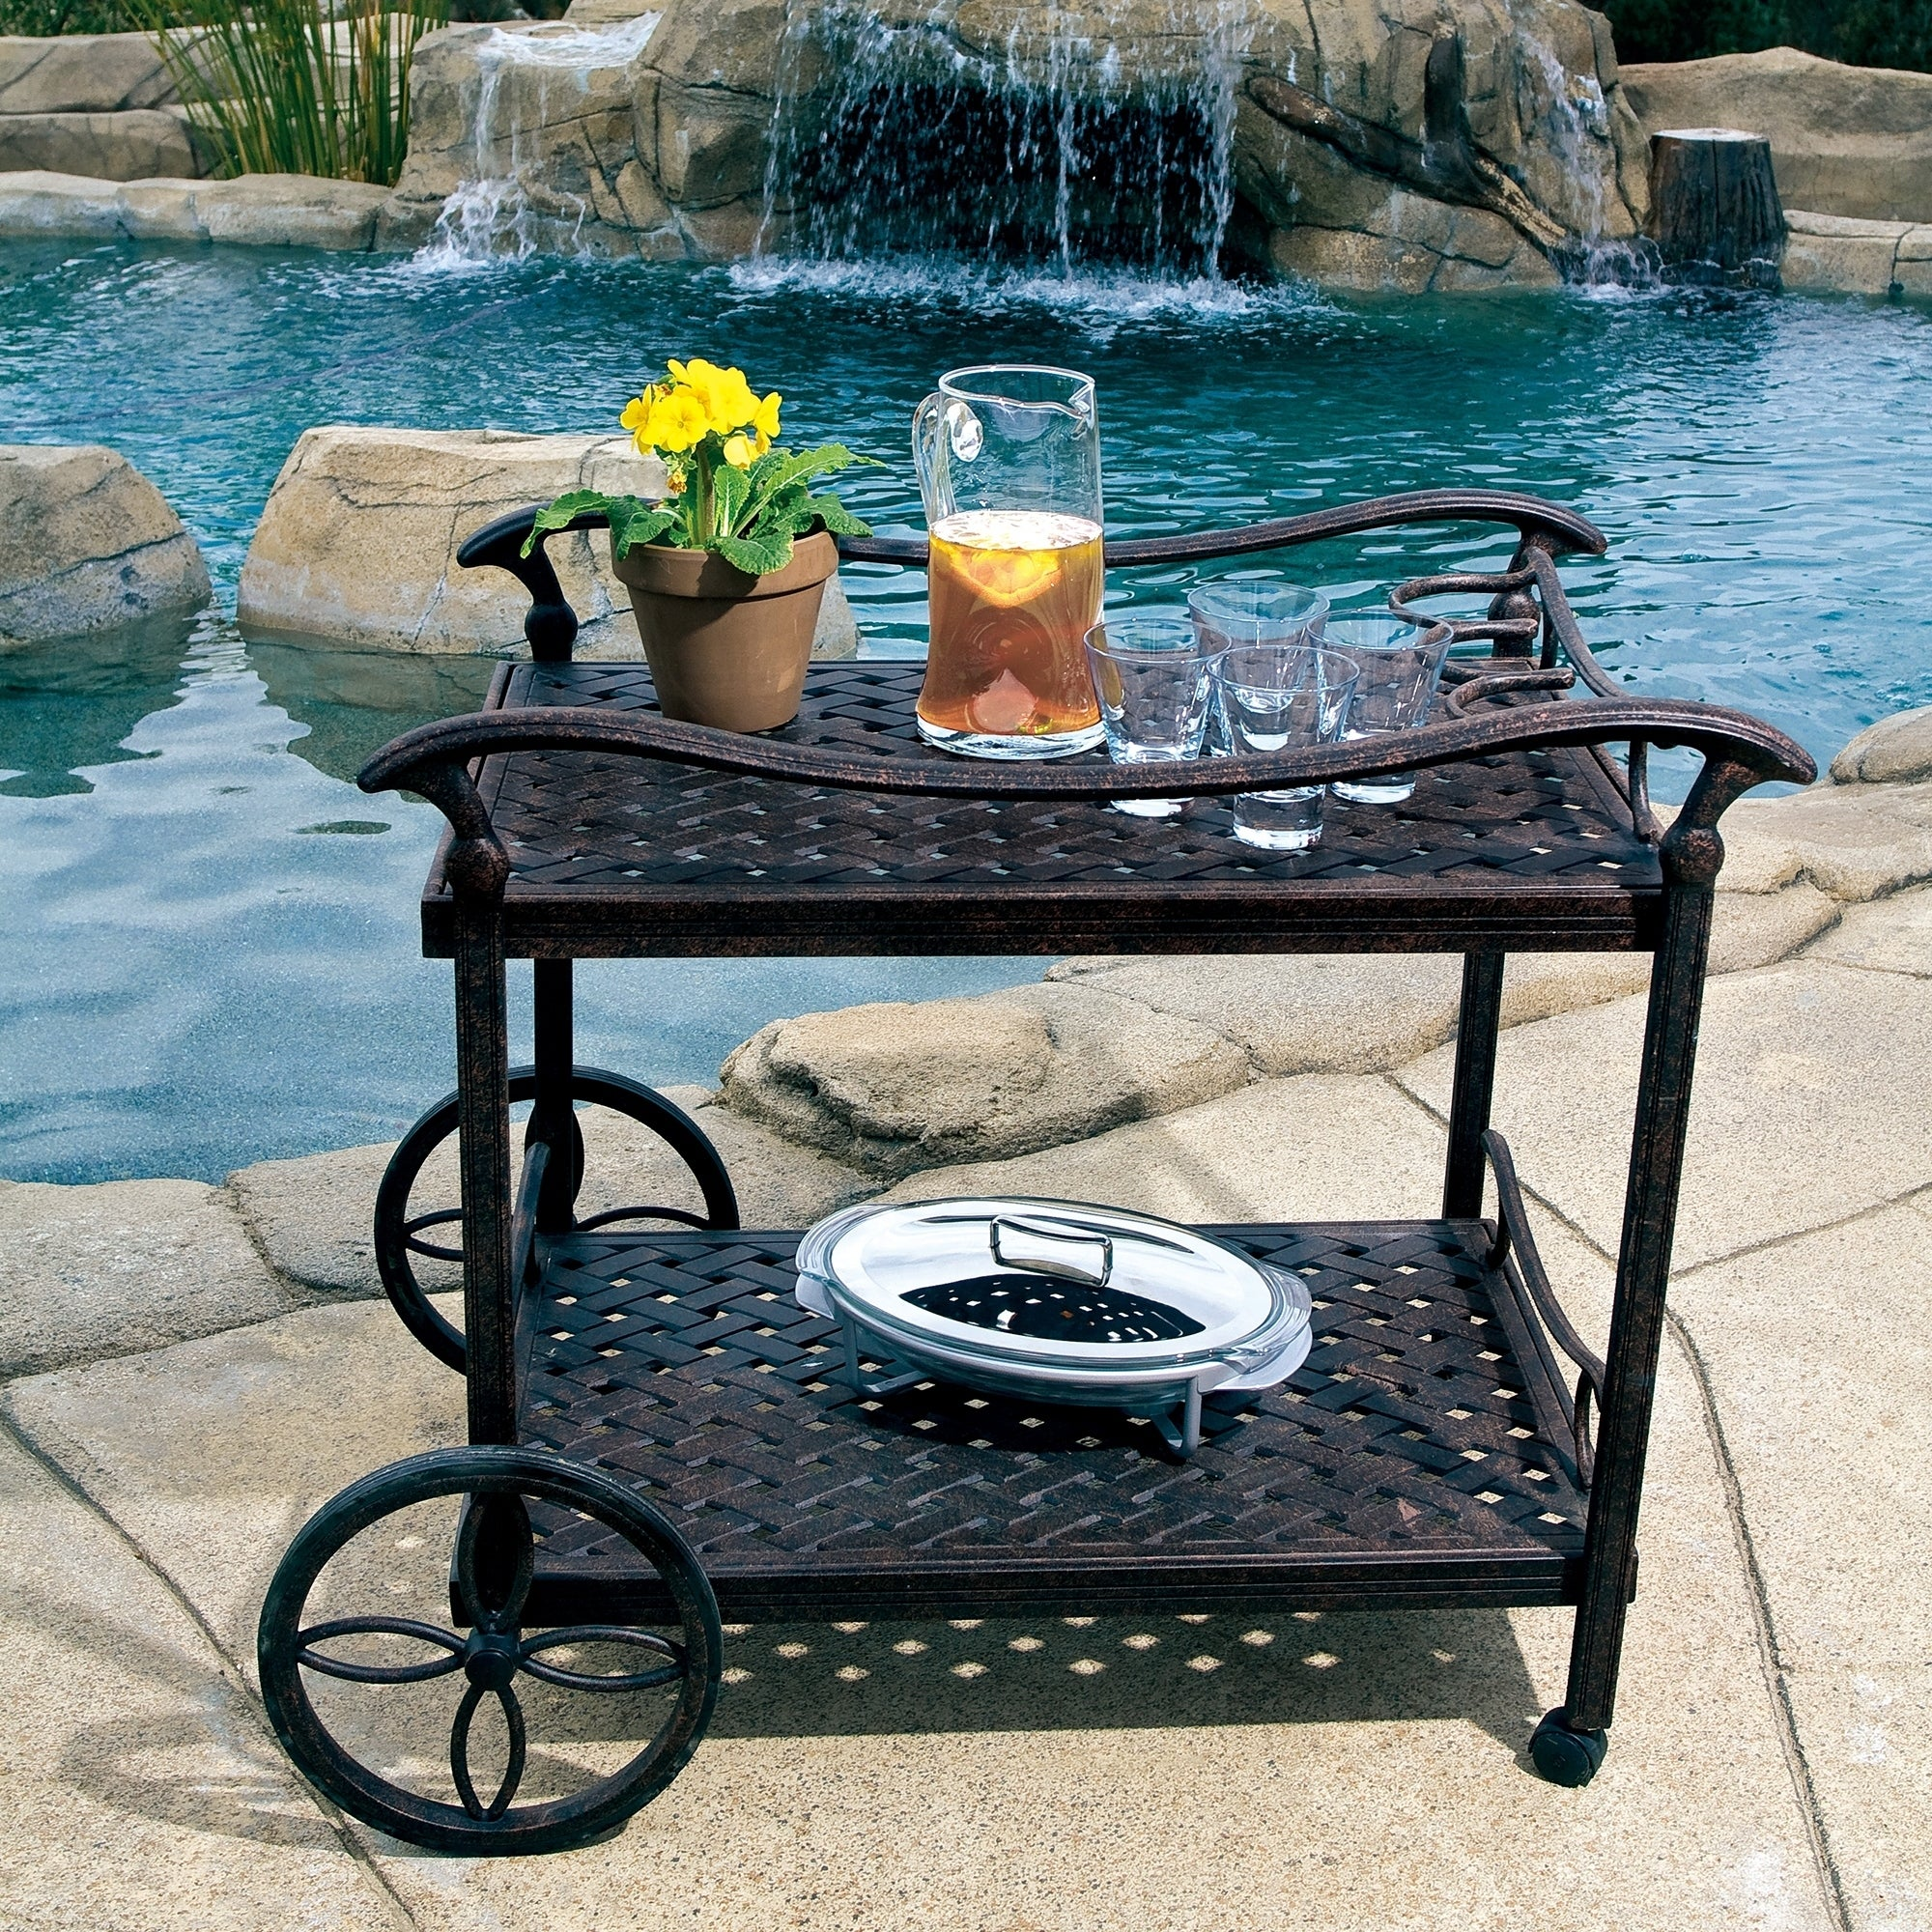 Carter Rolling Bar And Serving Cart Cast Aluminum 2 Tiered Metal Wine Tea Cart With 4 Wheels Kitchen Living Room Dining Room Overstock 29958663